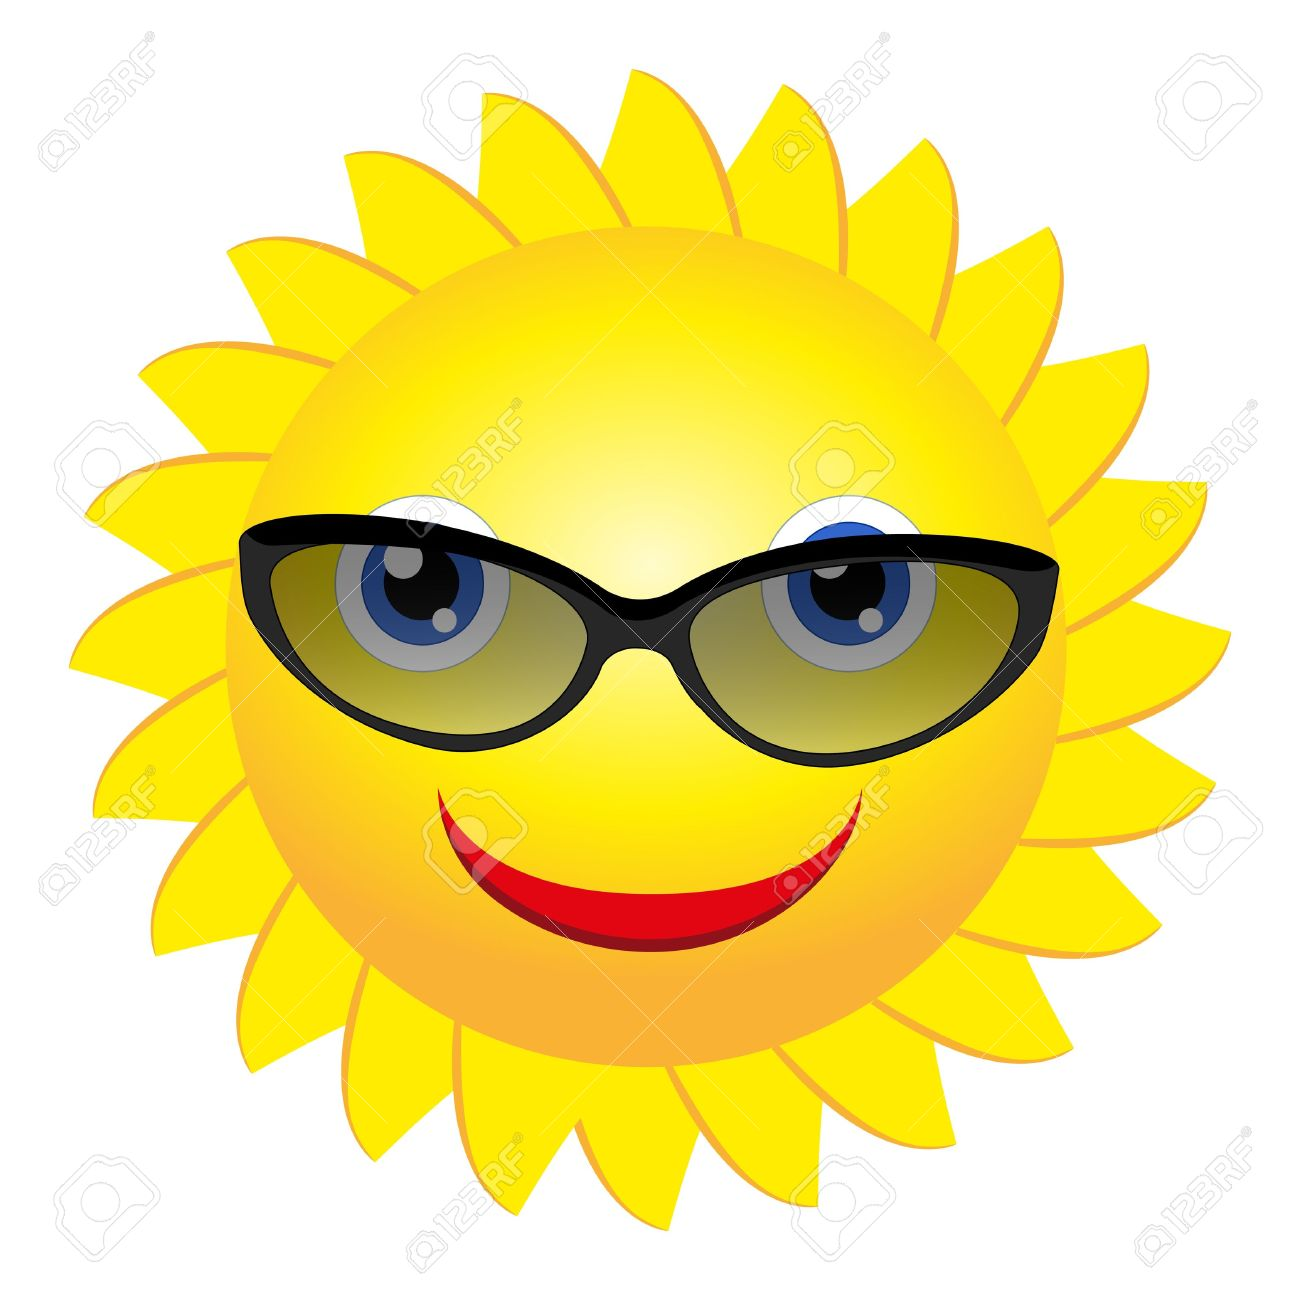 Smiling sun with sunglasses - Smiling Sun With Sunglasses Vector Free Cliparts